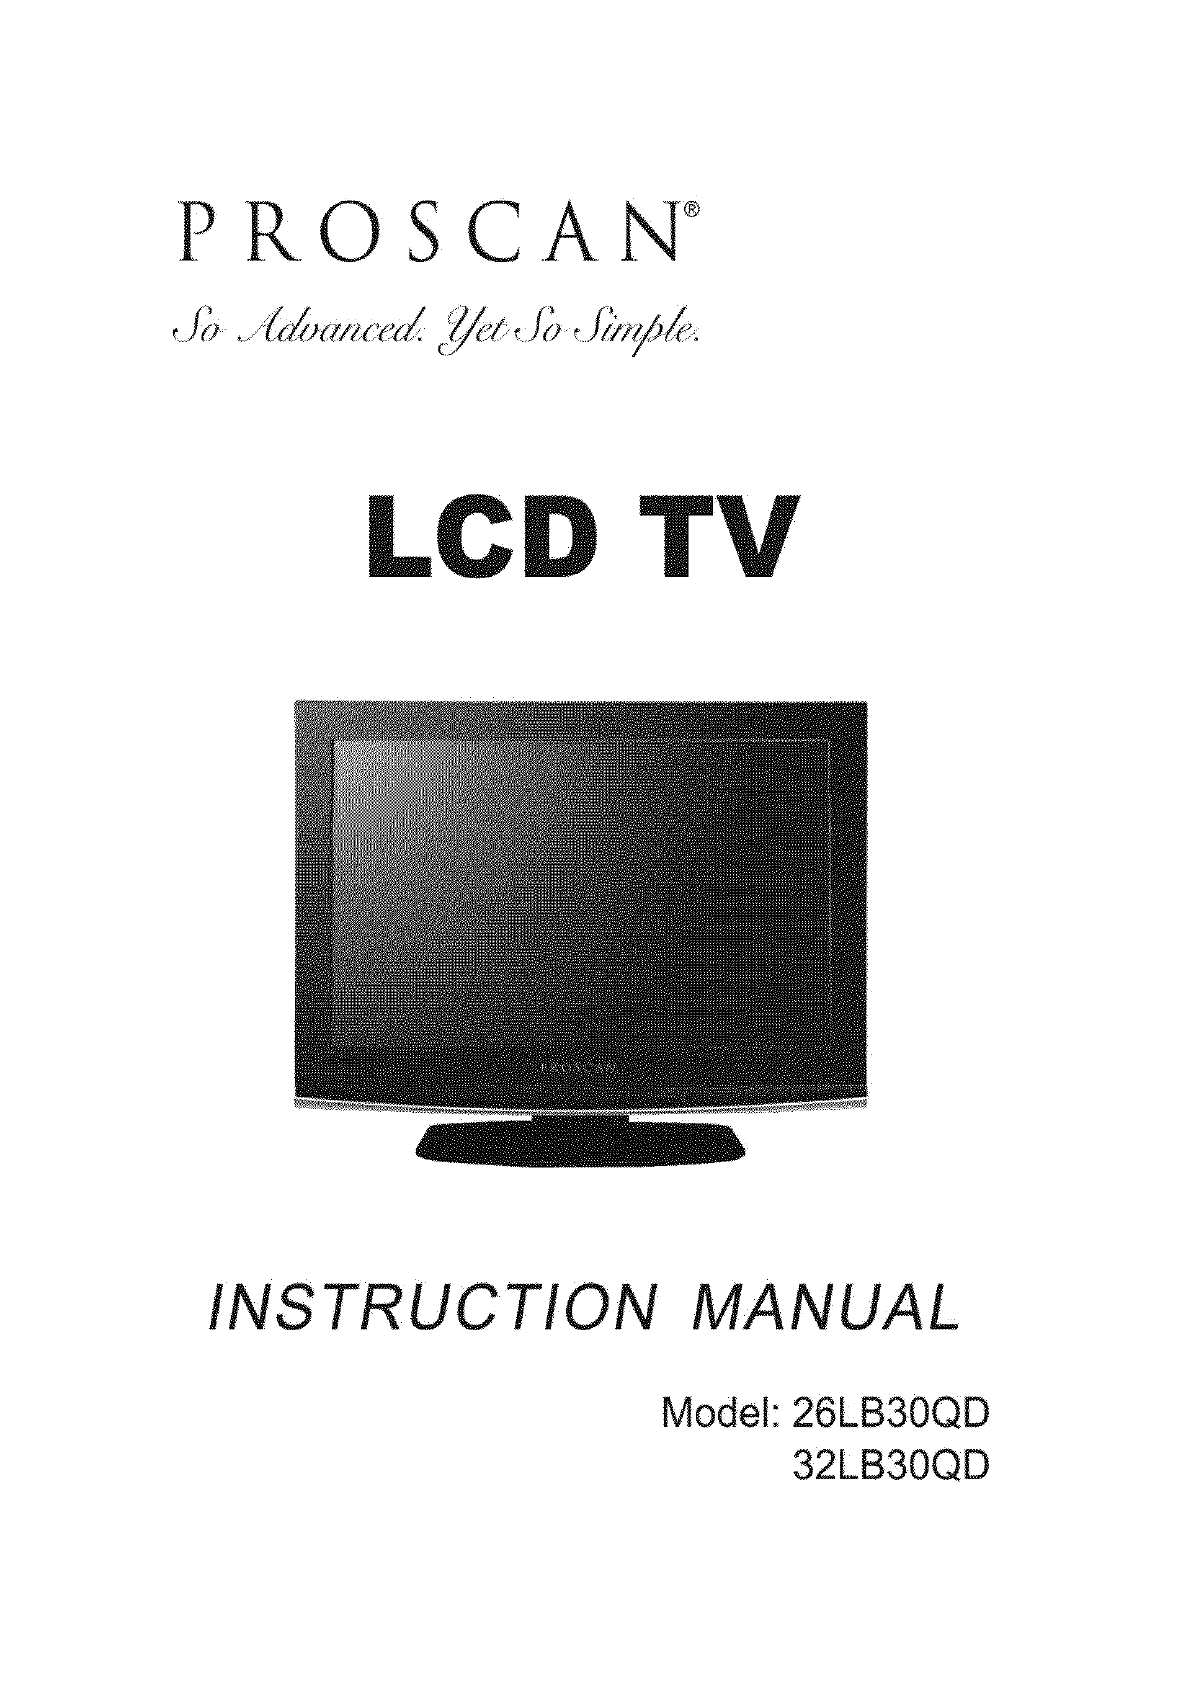 proscan flat panel television 32lb30qd user guide manualsonline com rh tv manualsonline com TV Remote Control Code List 32Lc30s57 Proscan TV Stand